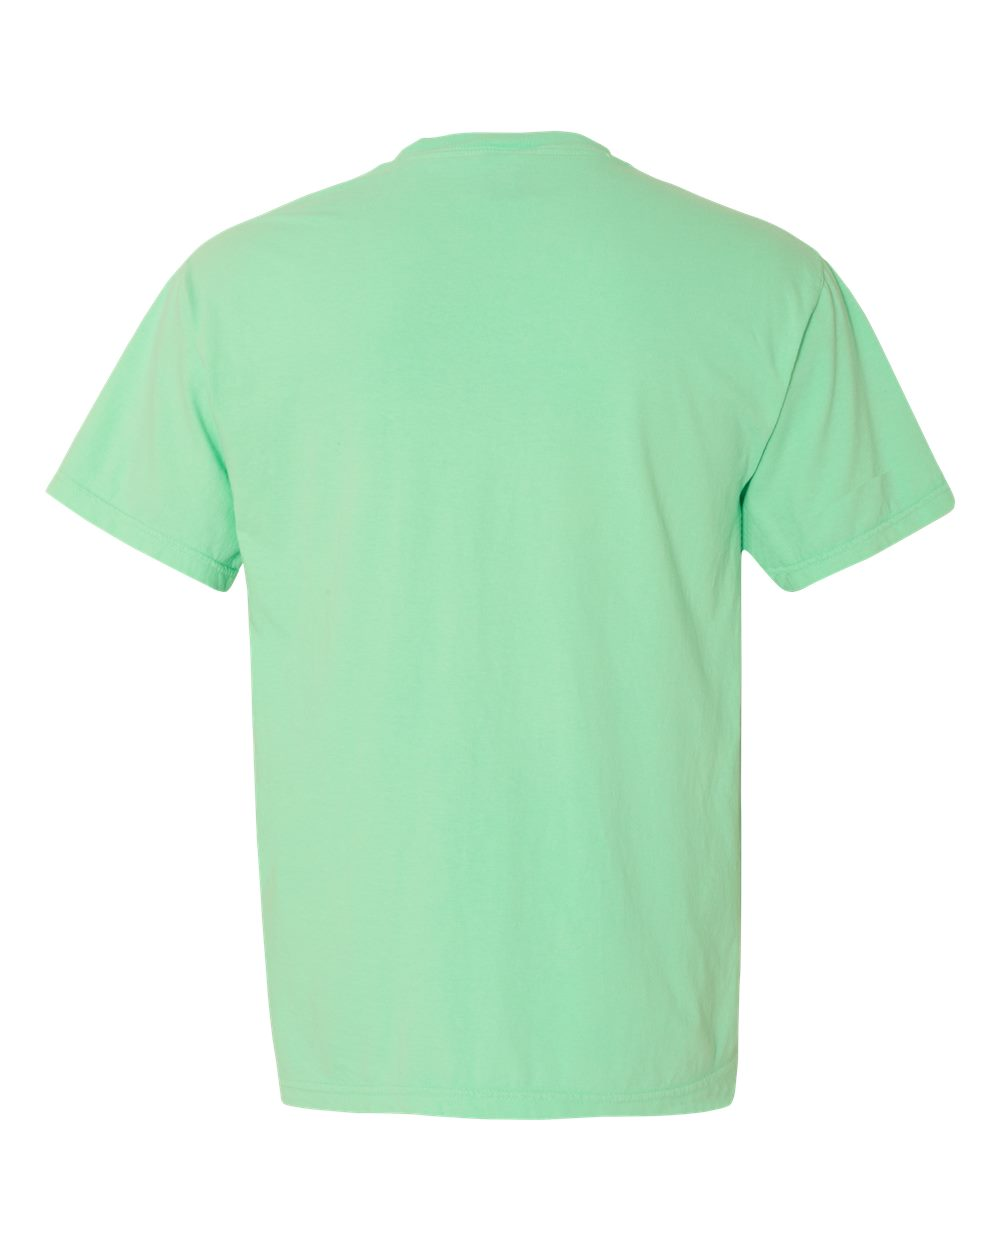 Comfort-Colors-Men-039-s-6-1-oz-Garment-Dyed-Pocket-T-Shirt-6030CC-S-3XL thumbnail 93